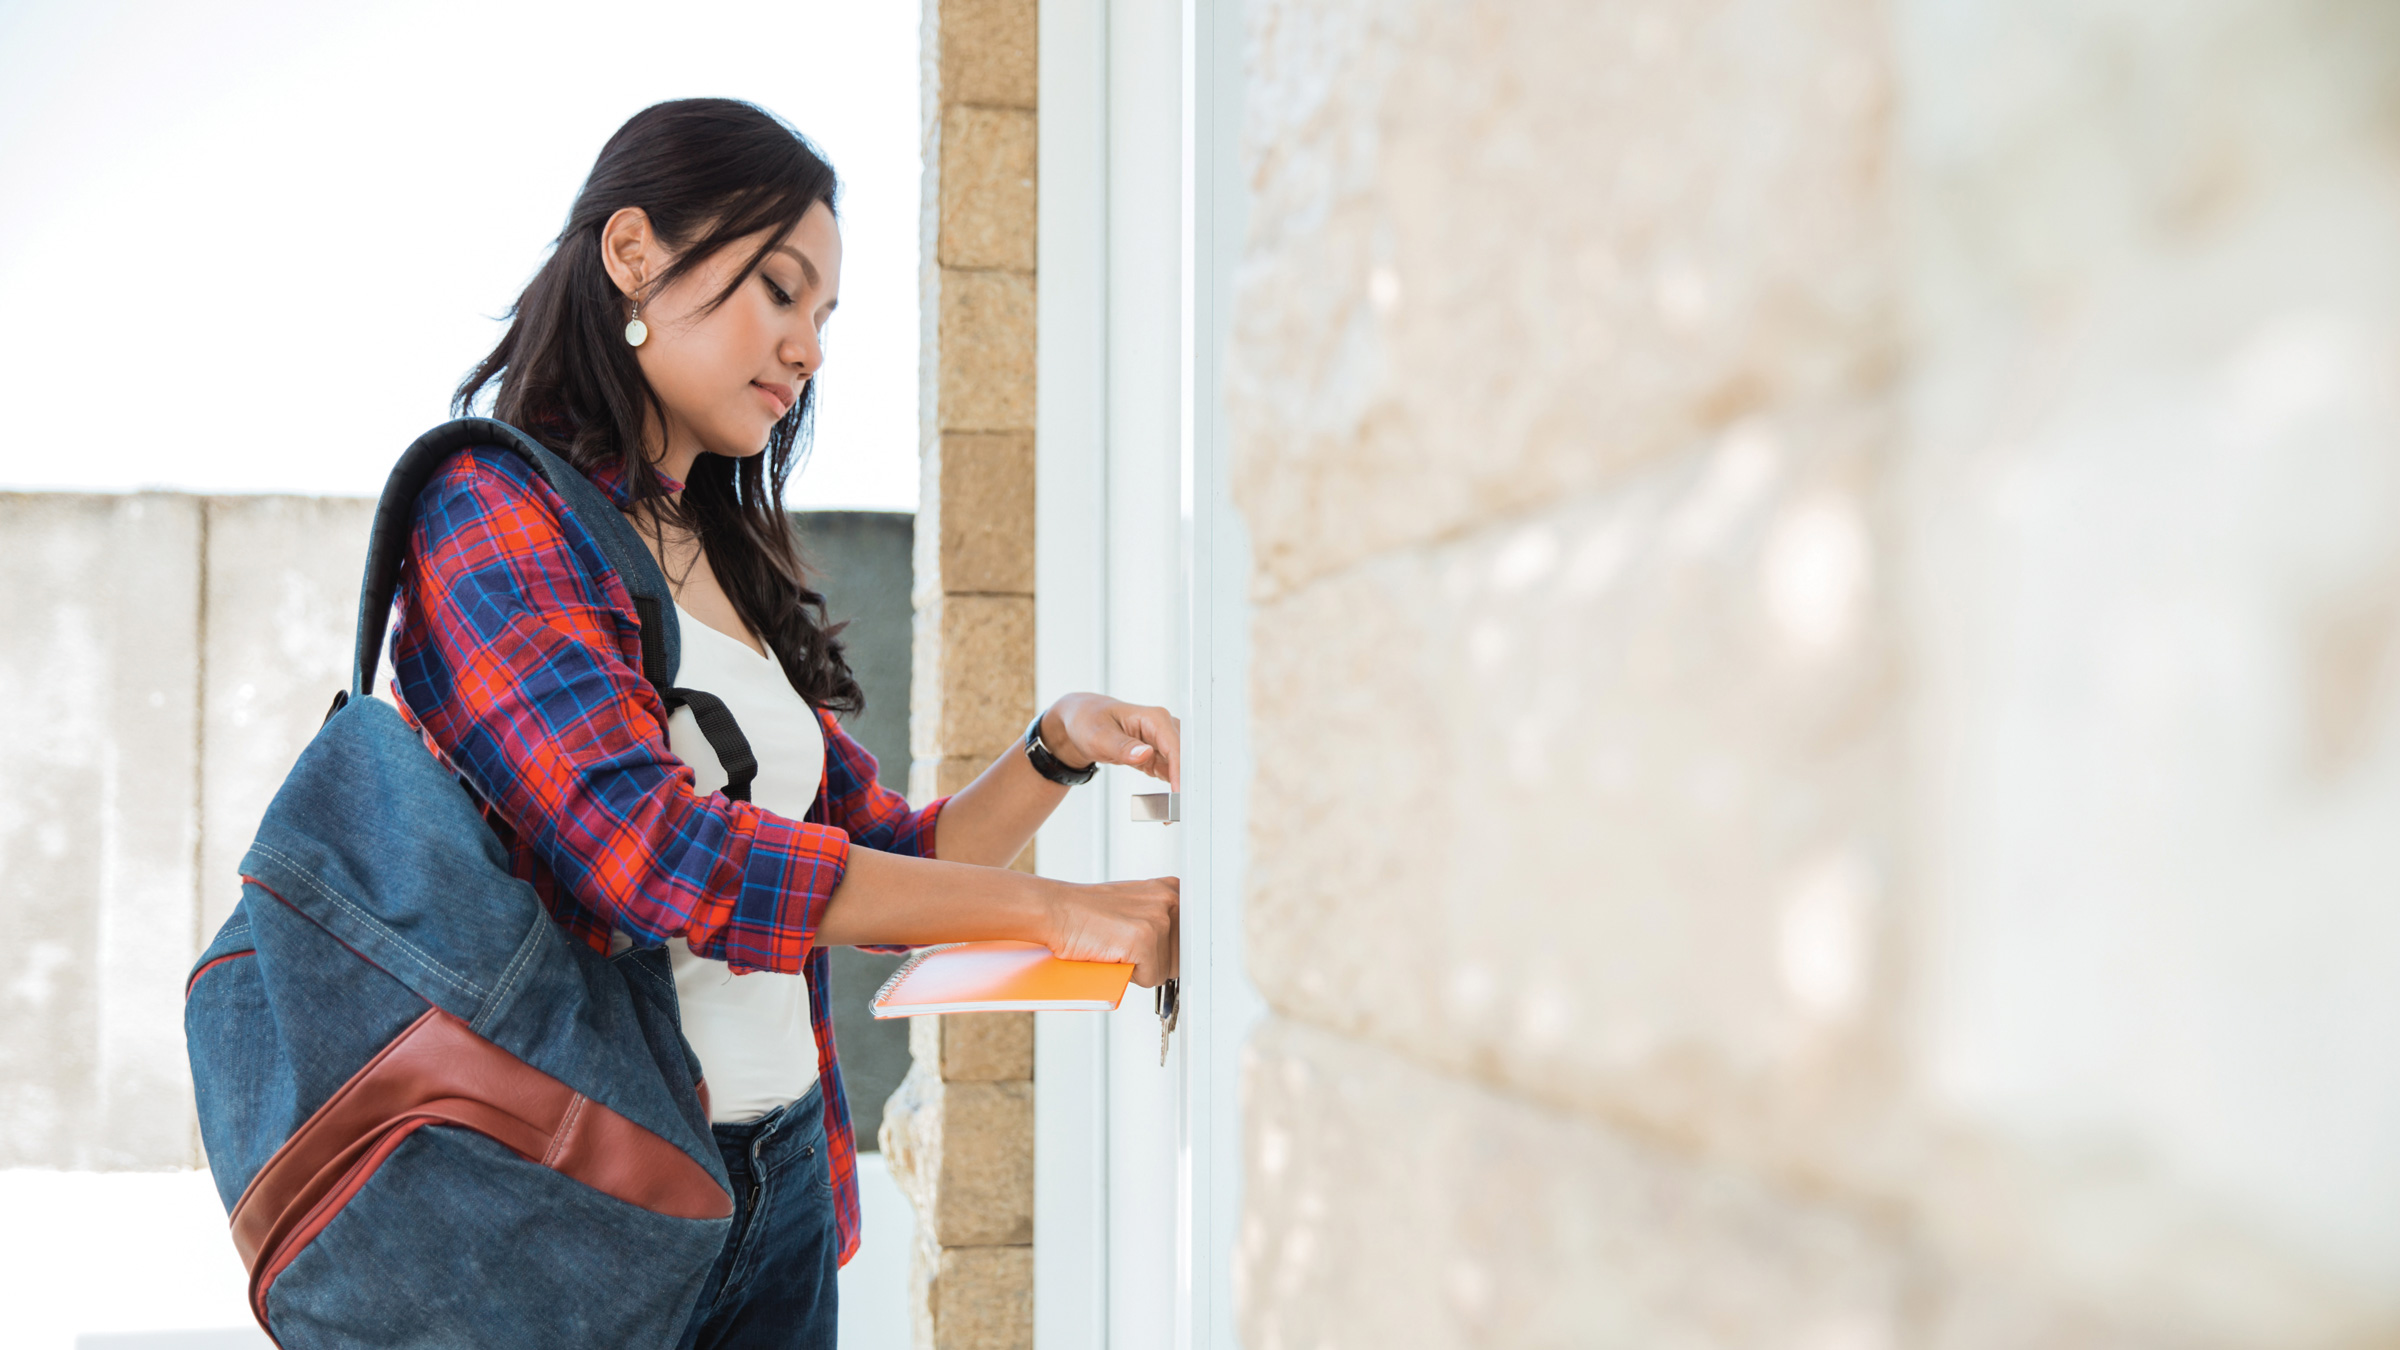 Young woman closing and locking her residence unit door